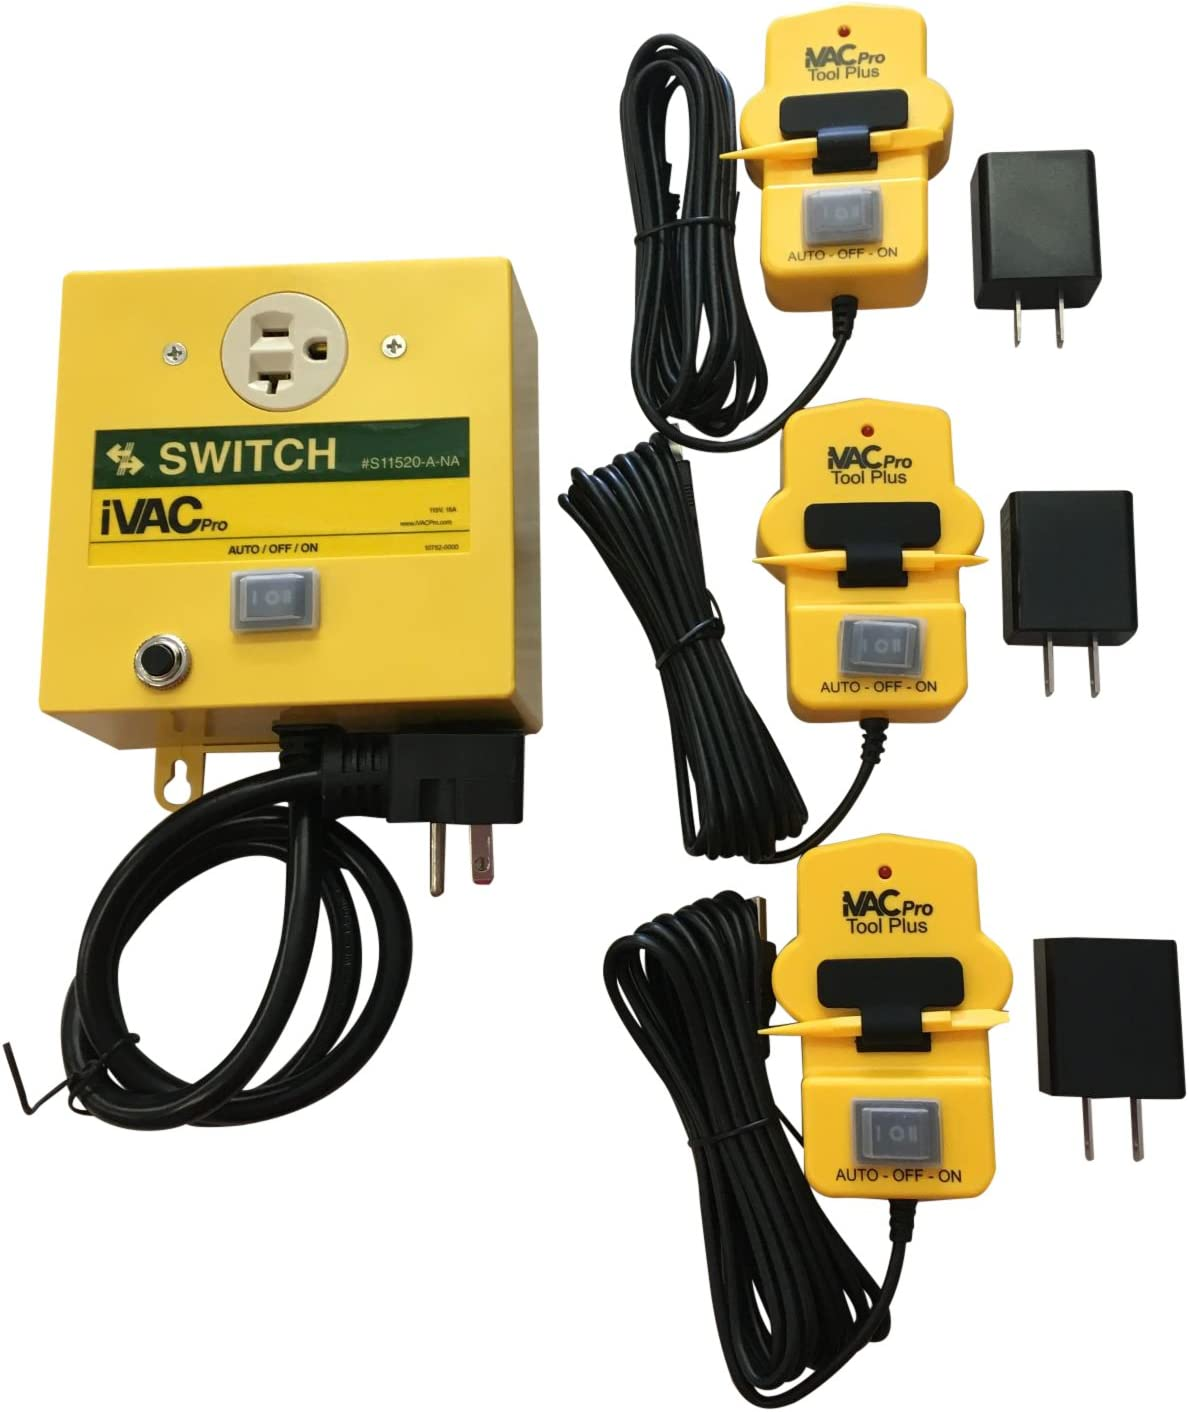 iVAC Basic 3-Tool Shop Vacuum Dust Collector Switch/Pro Tool Plus Kit